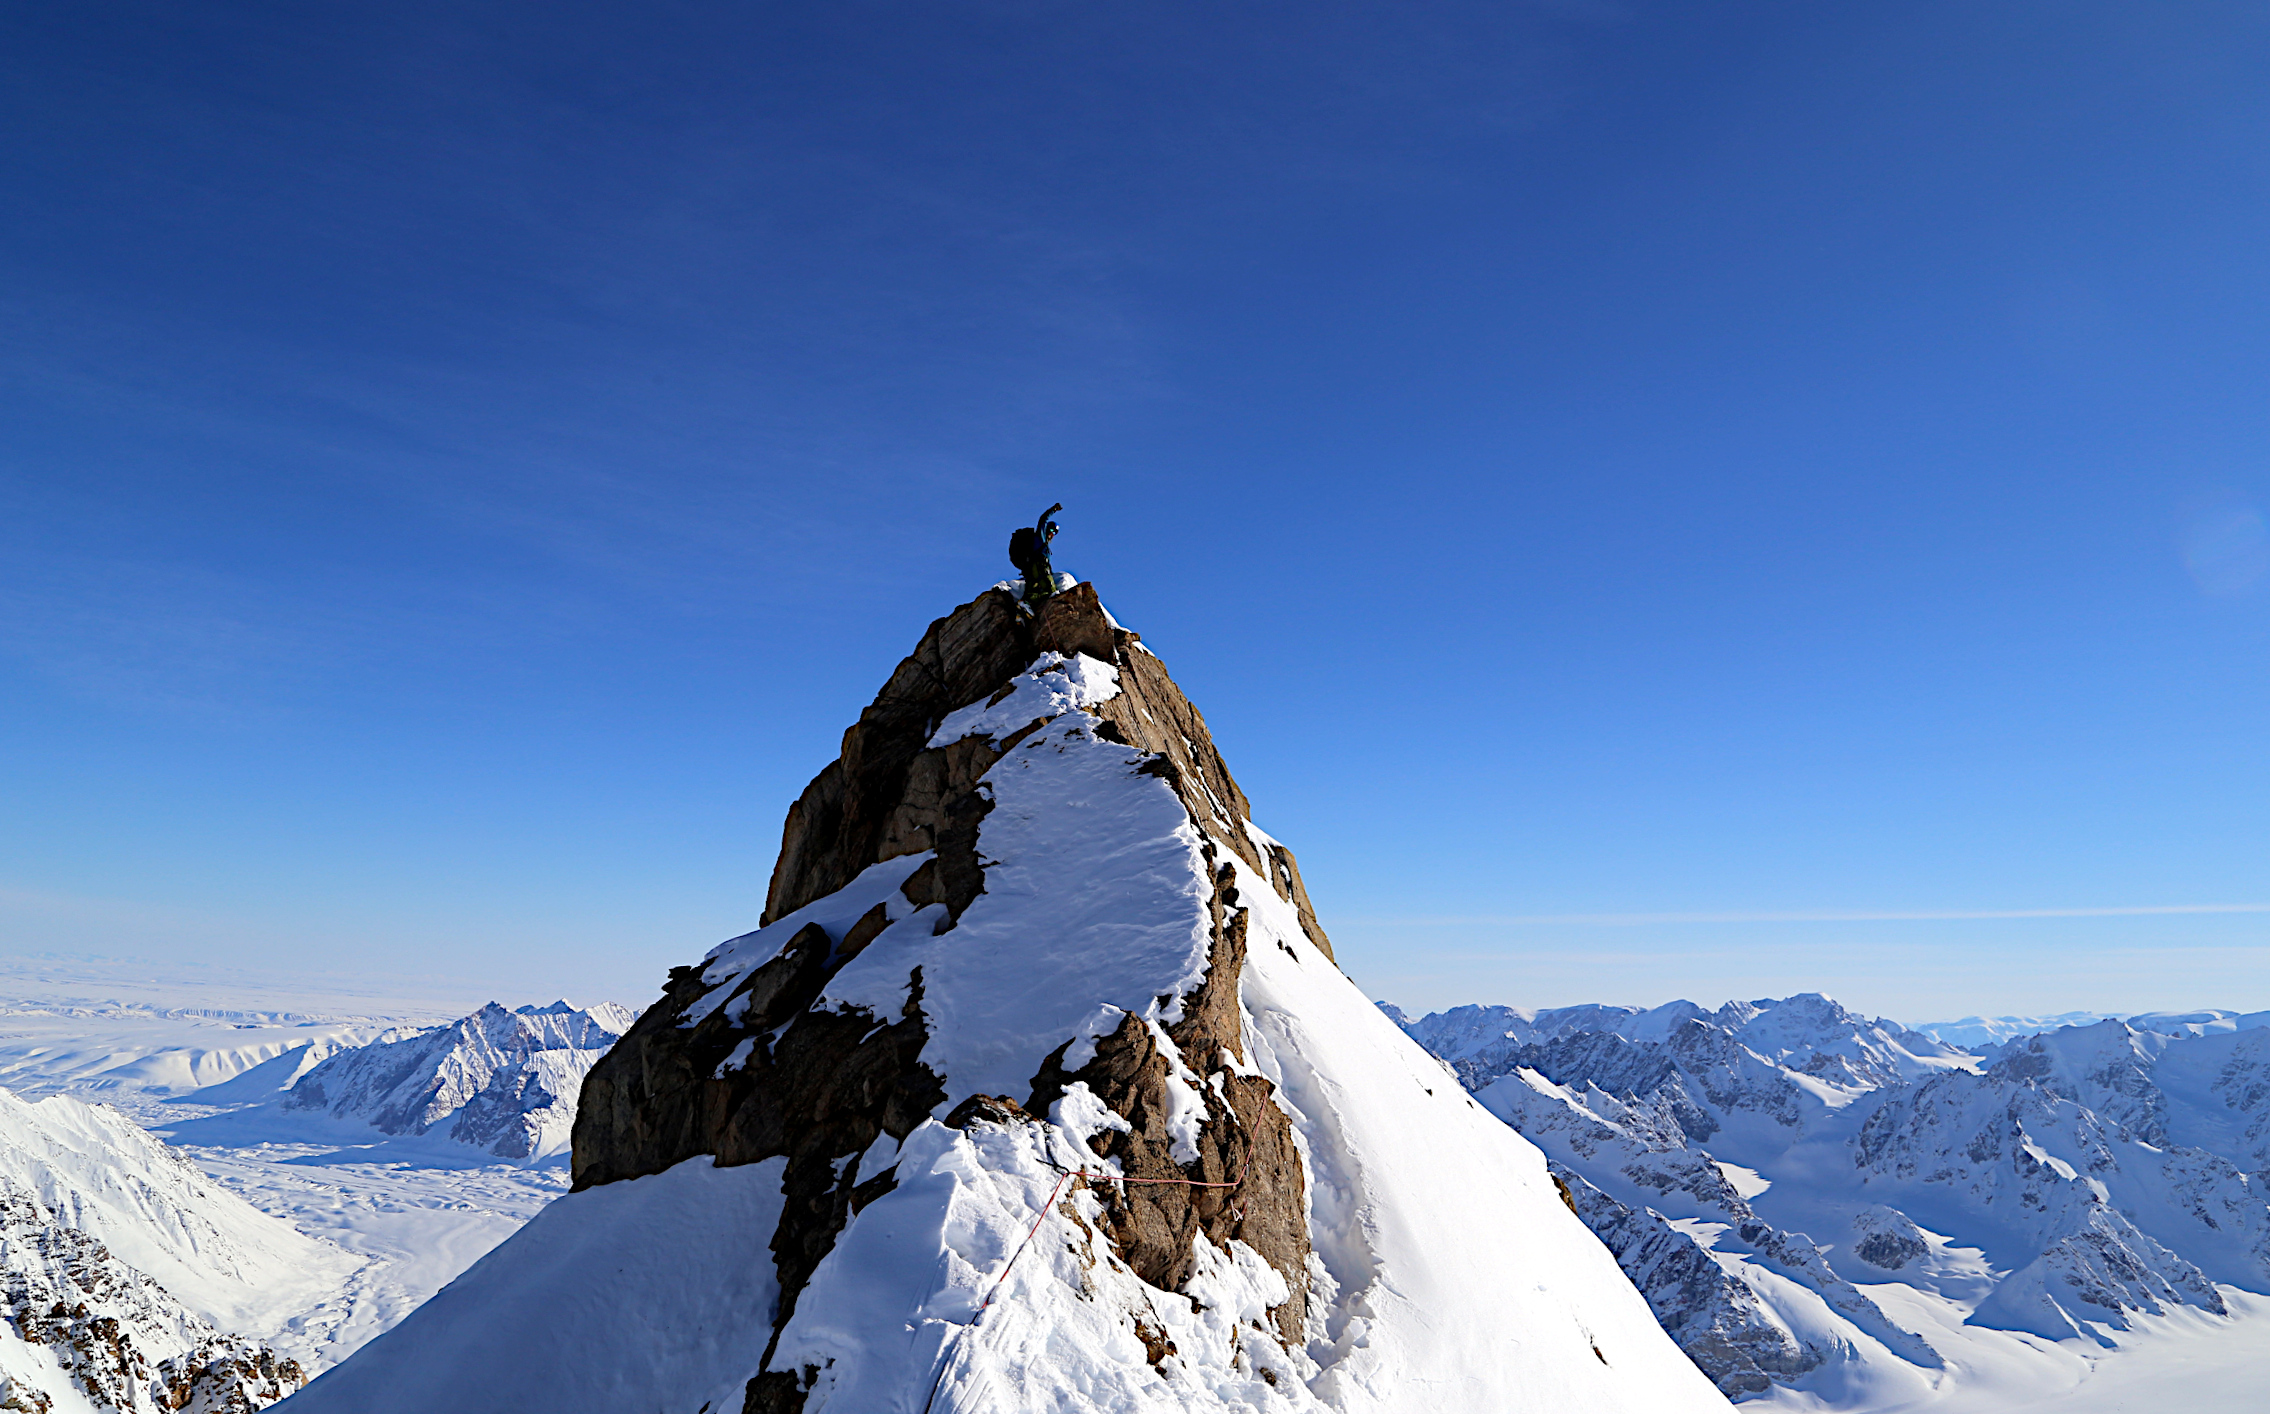 Photo of me on the first ascent of Boughfell, the second preivous unclimbed peak we climbed during the 2017 Greenland Expedition.